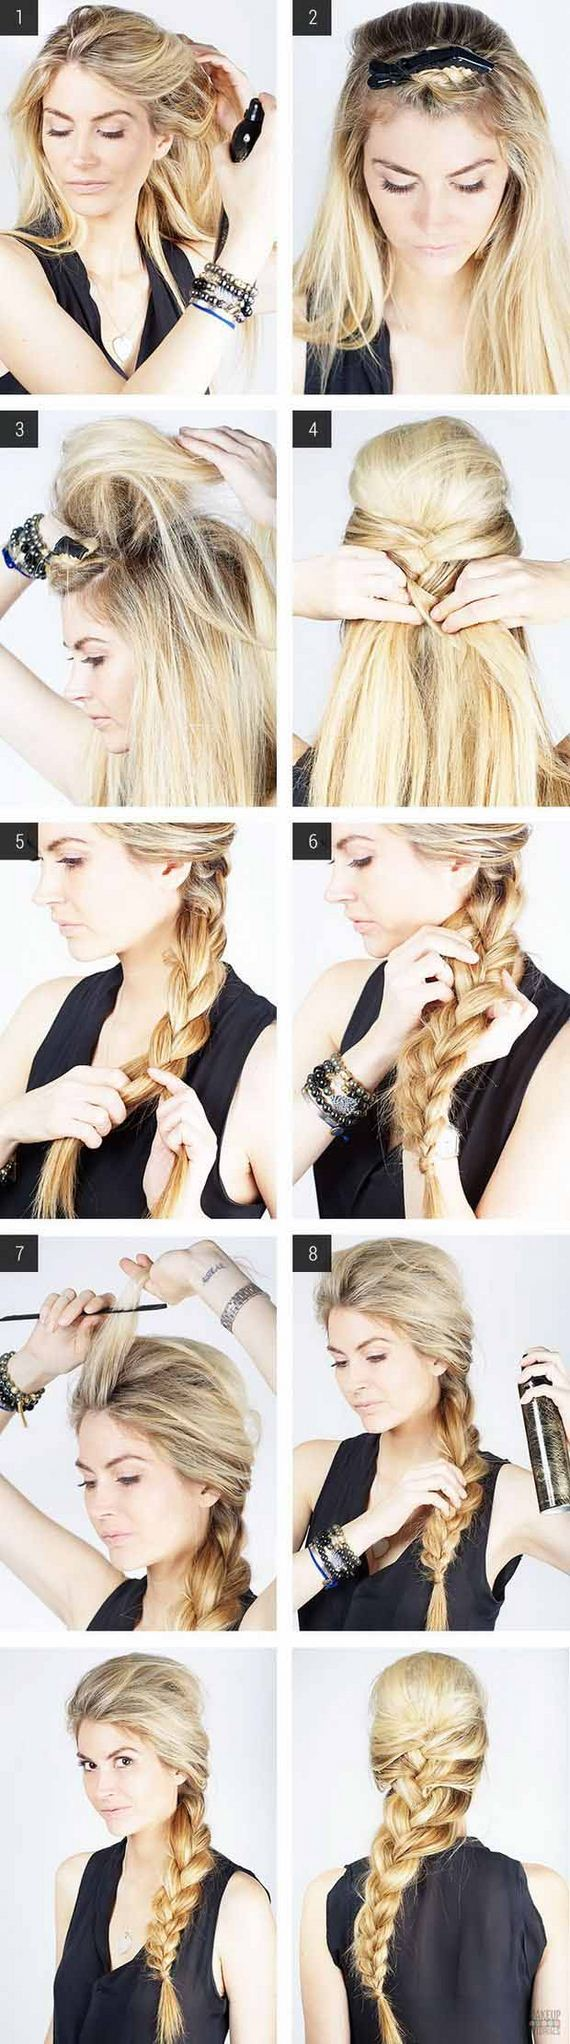 02-Easy-Hairstyles